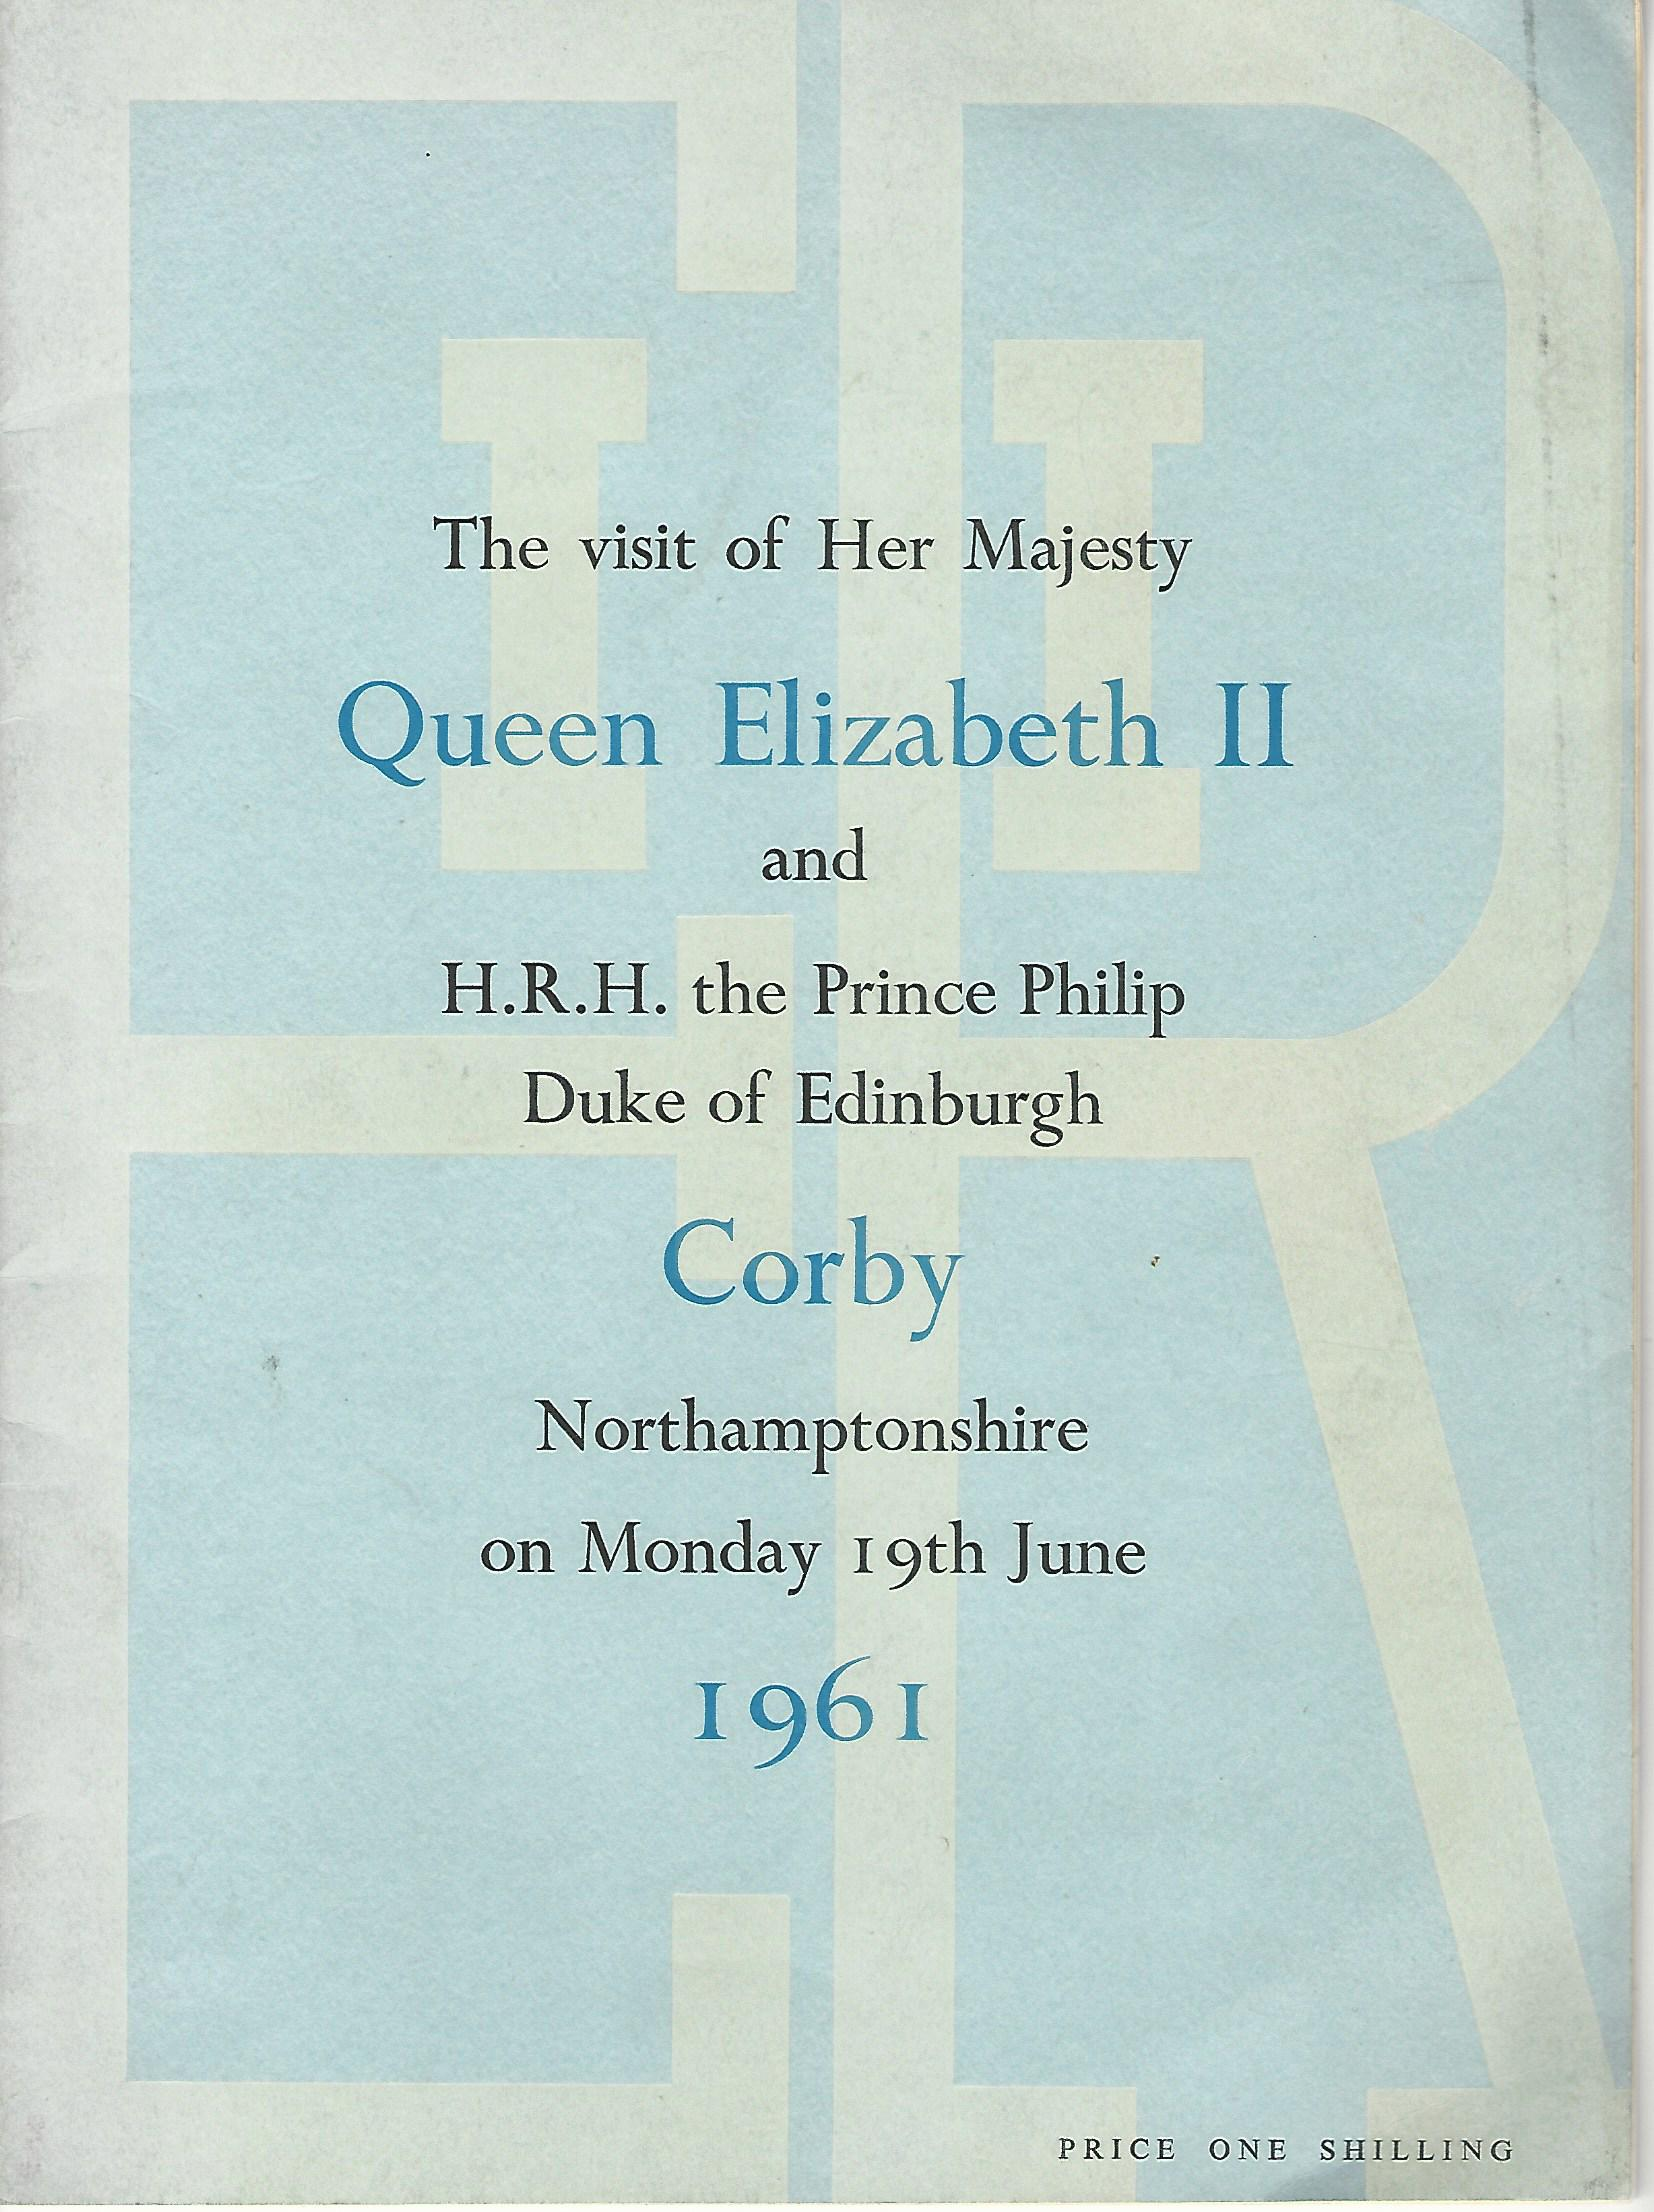 Image for The Visit of Her Majesty Queen Elizabeth II and H.R.H. the Prince Philip Duke of Edinburgh to Corby, Northamptonshire Monday 19th June, 1961.